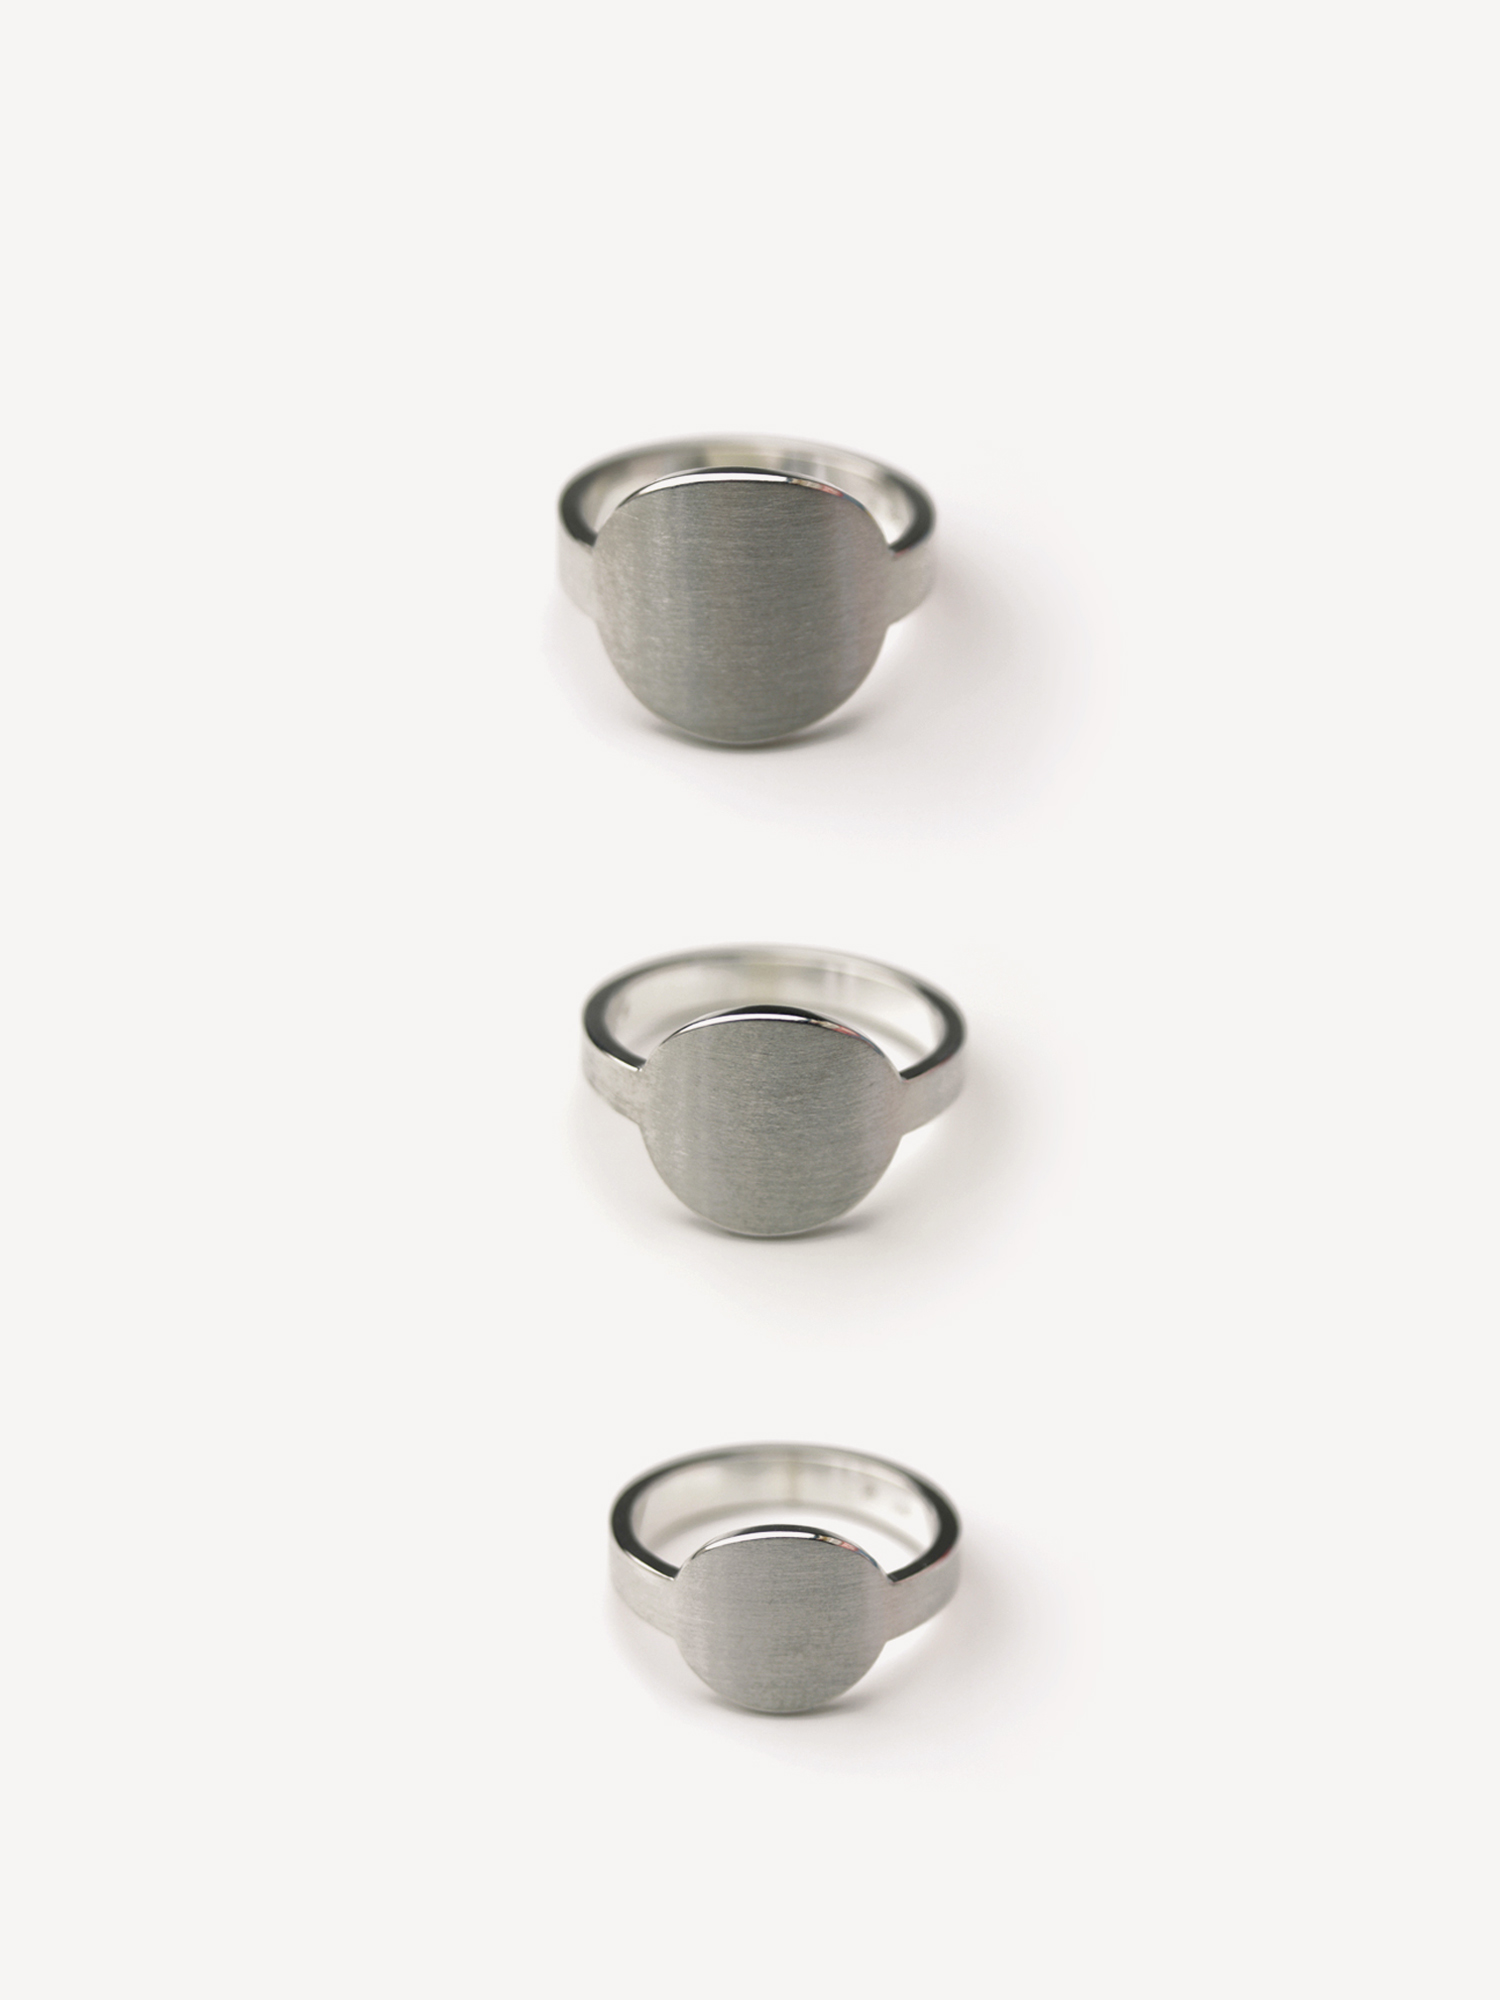 Übersicht Siegelringe Anda in rund in 925 Silber  Overview signet rings Anda, round in sterling silver